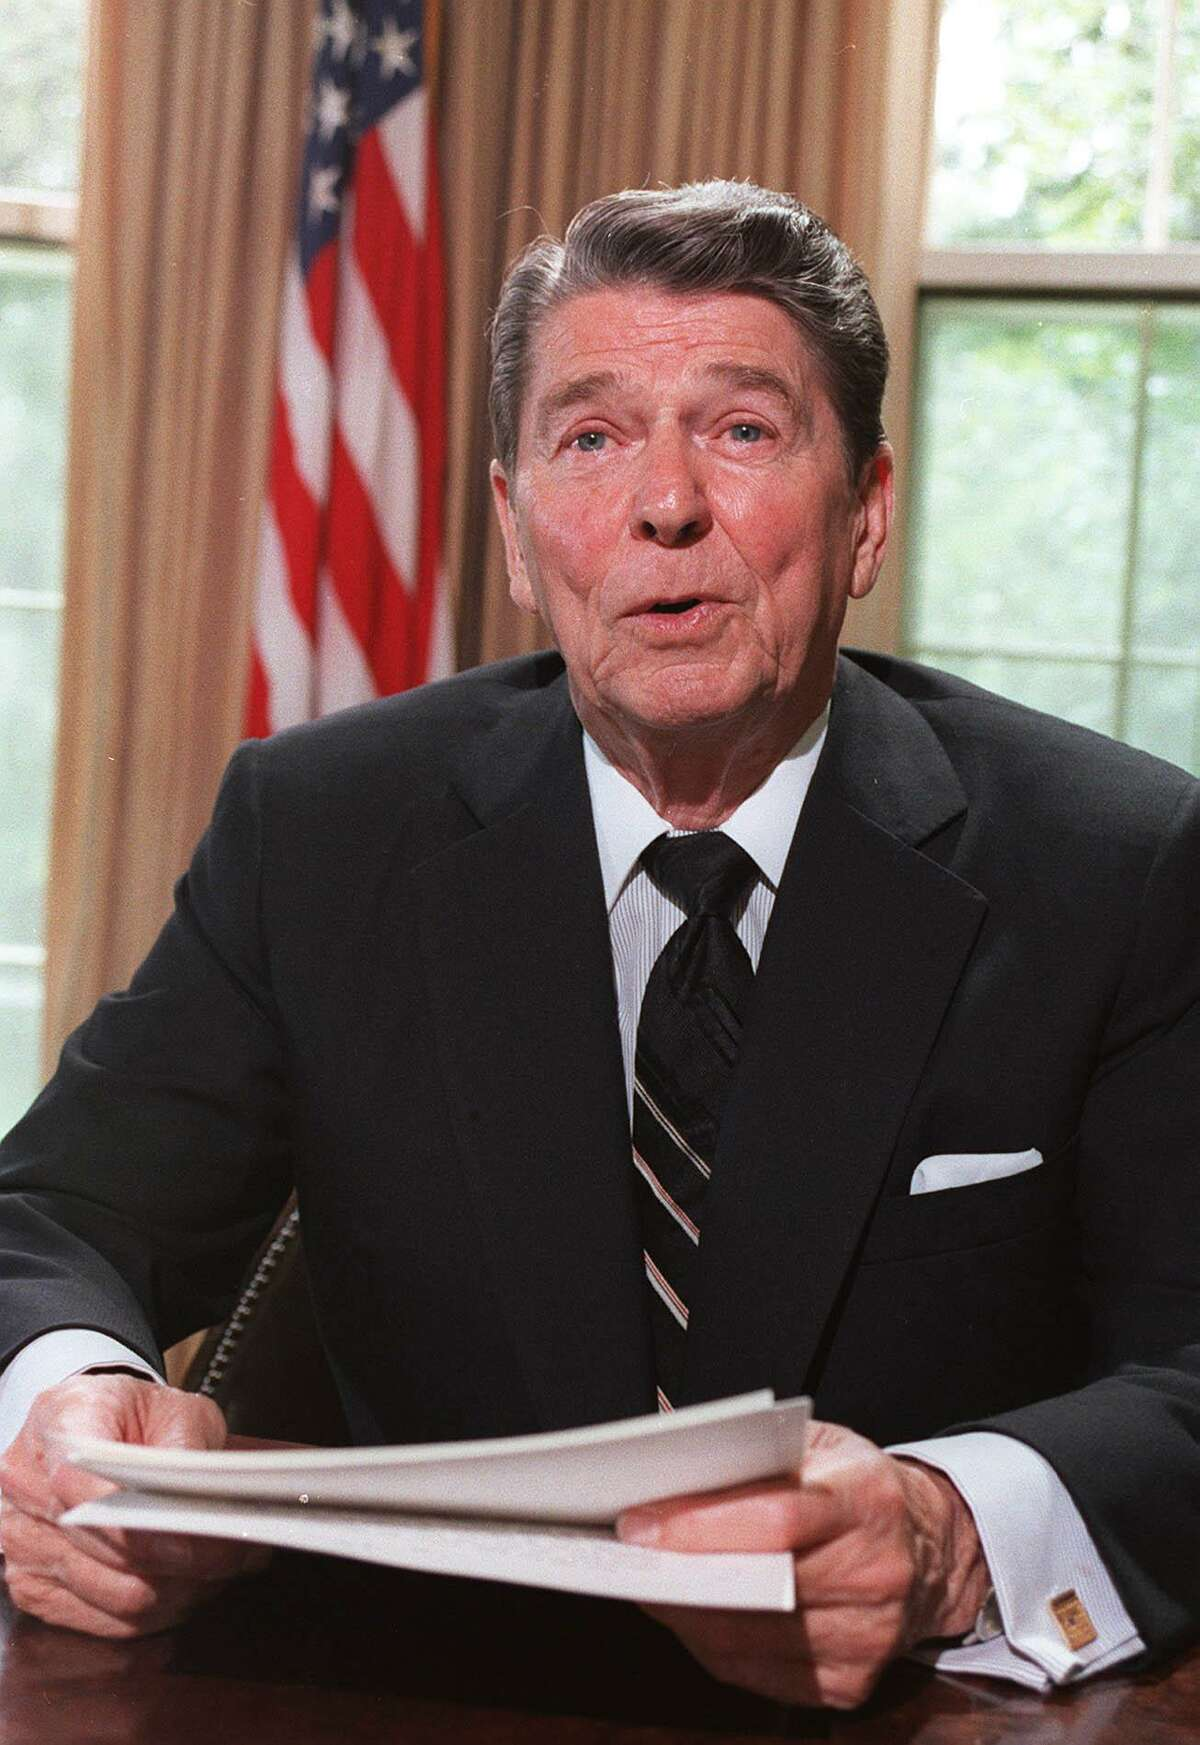 Republicans have turned Ronald Reagan into an icon, portraying him as the savior of a desperate, declining nation. Mostly, however, this is just propaganda.